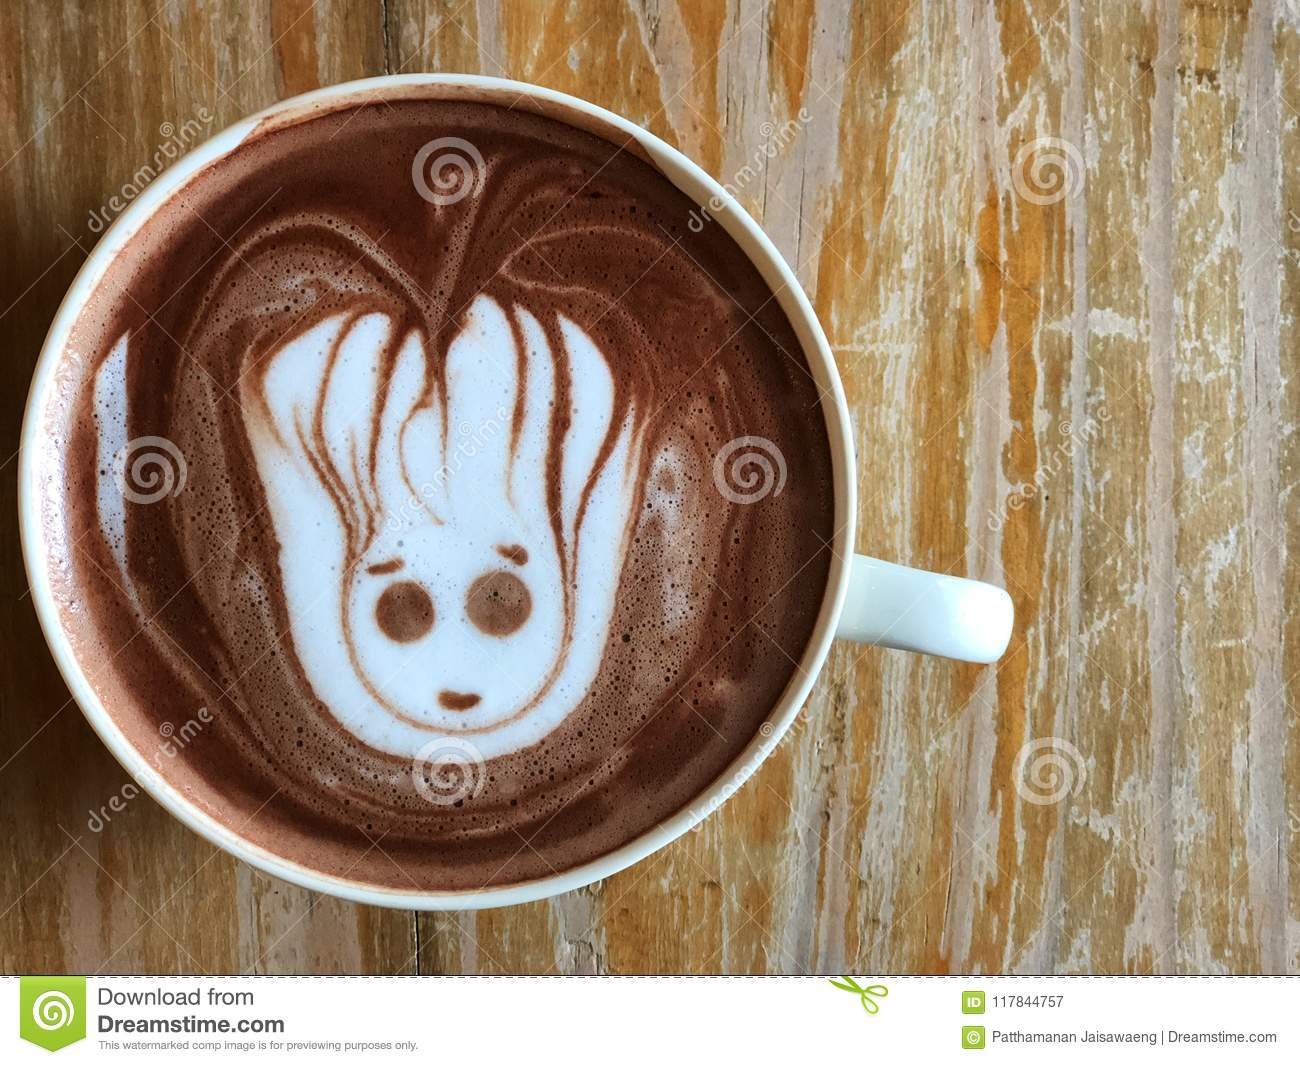 Cute Latte art coffee on the wooden table, latte art coffee shape look like `Groot`